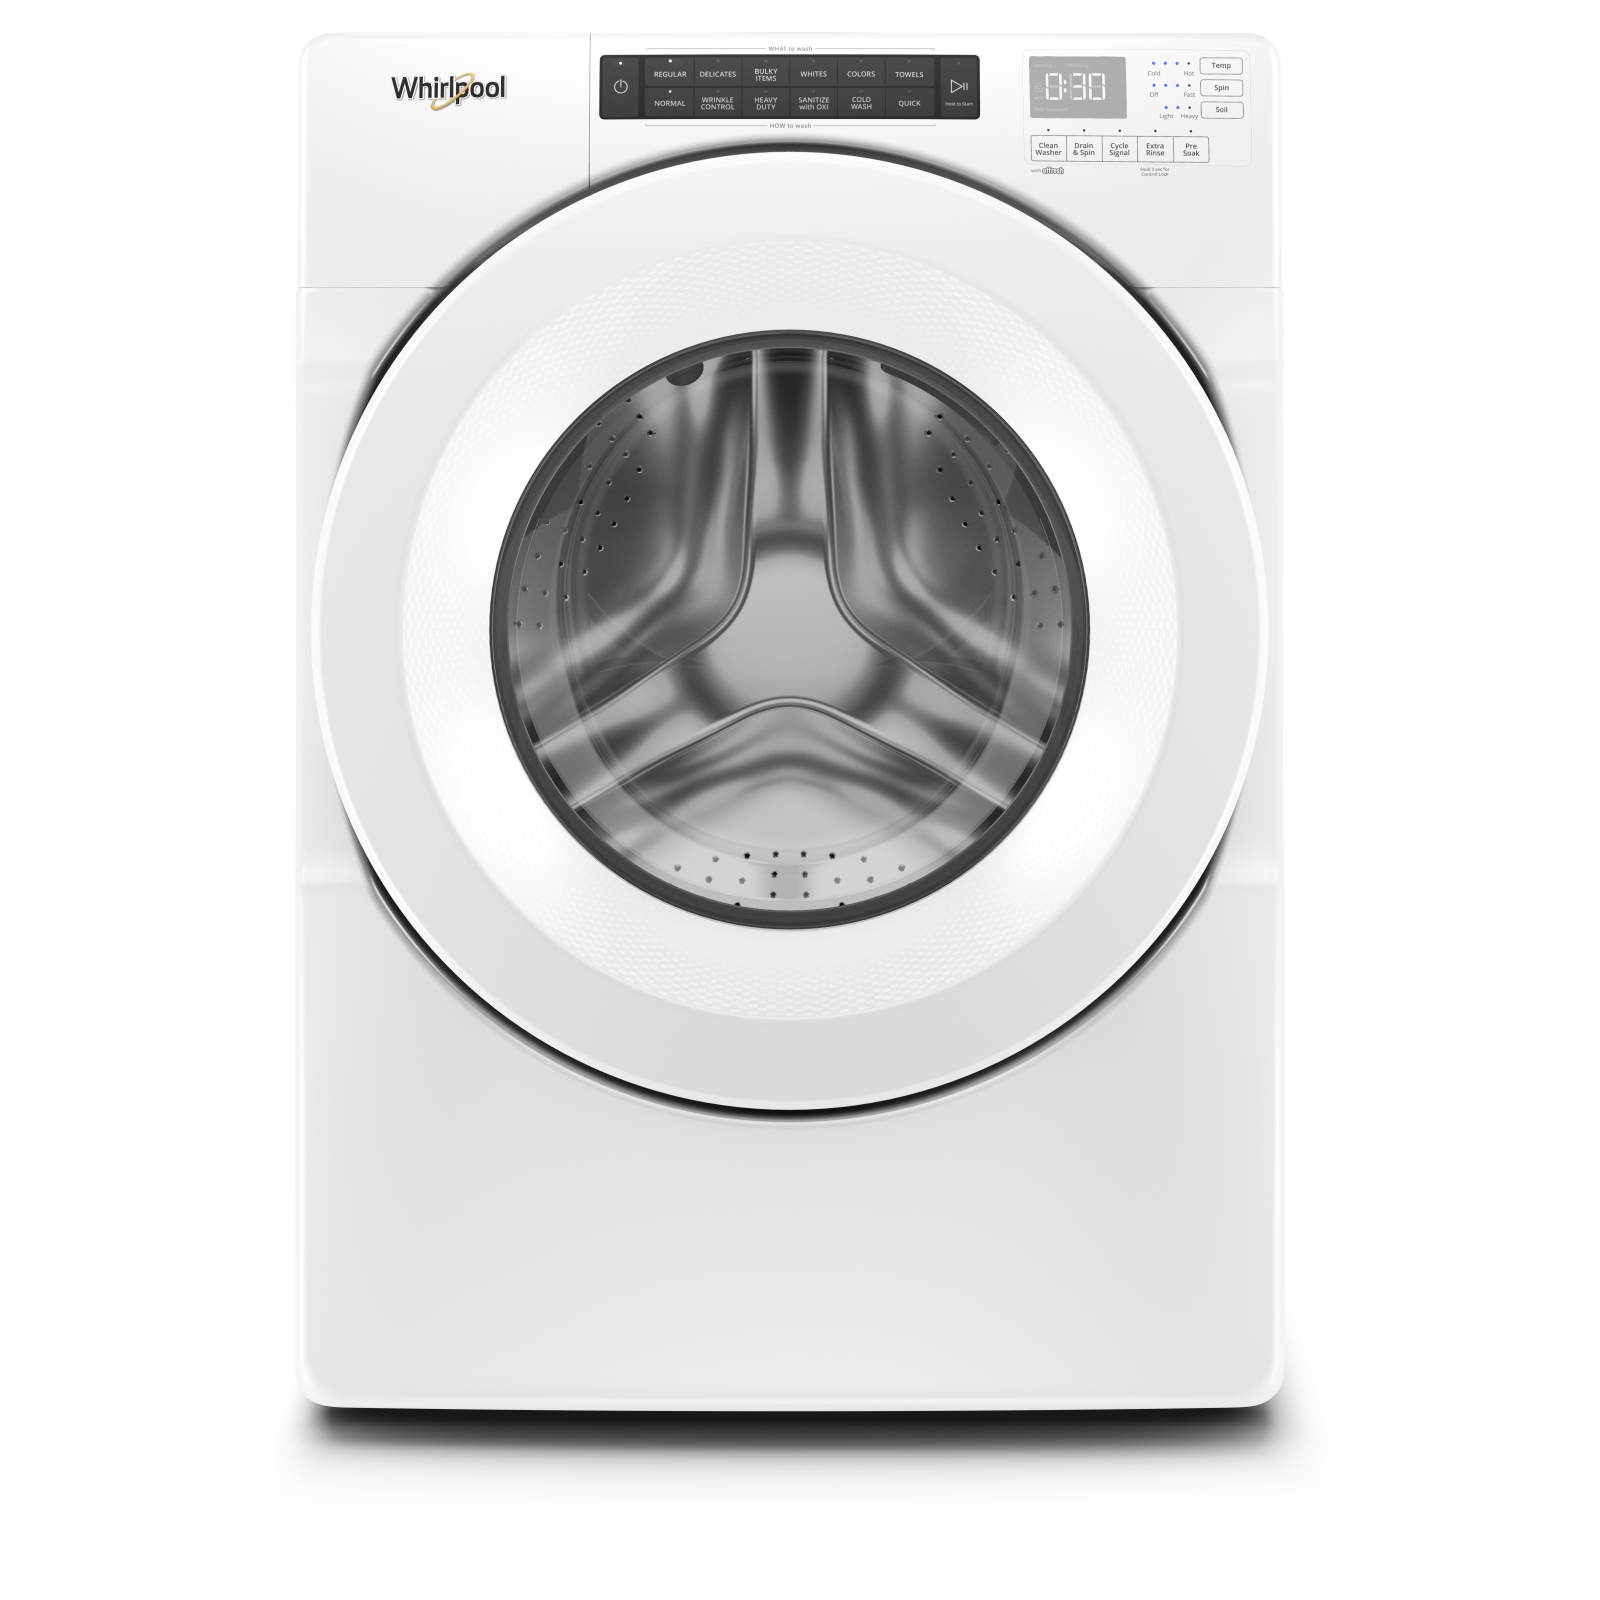 Whirlpool Washer 27 White WFW560CHW in White color showcased by Corbeil Electro Store